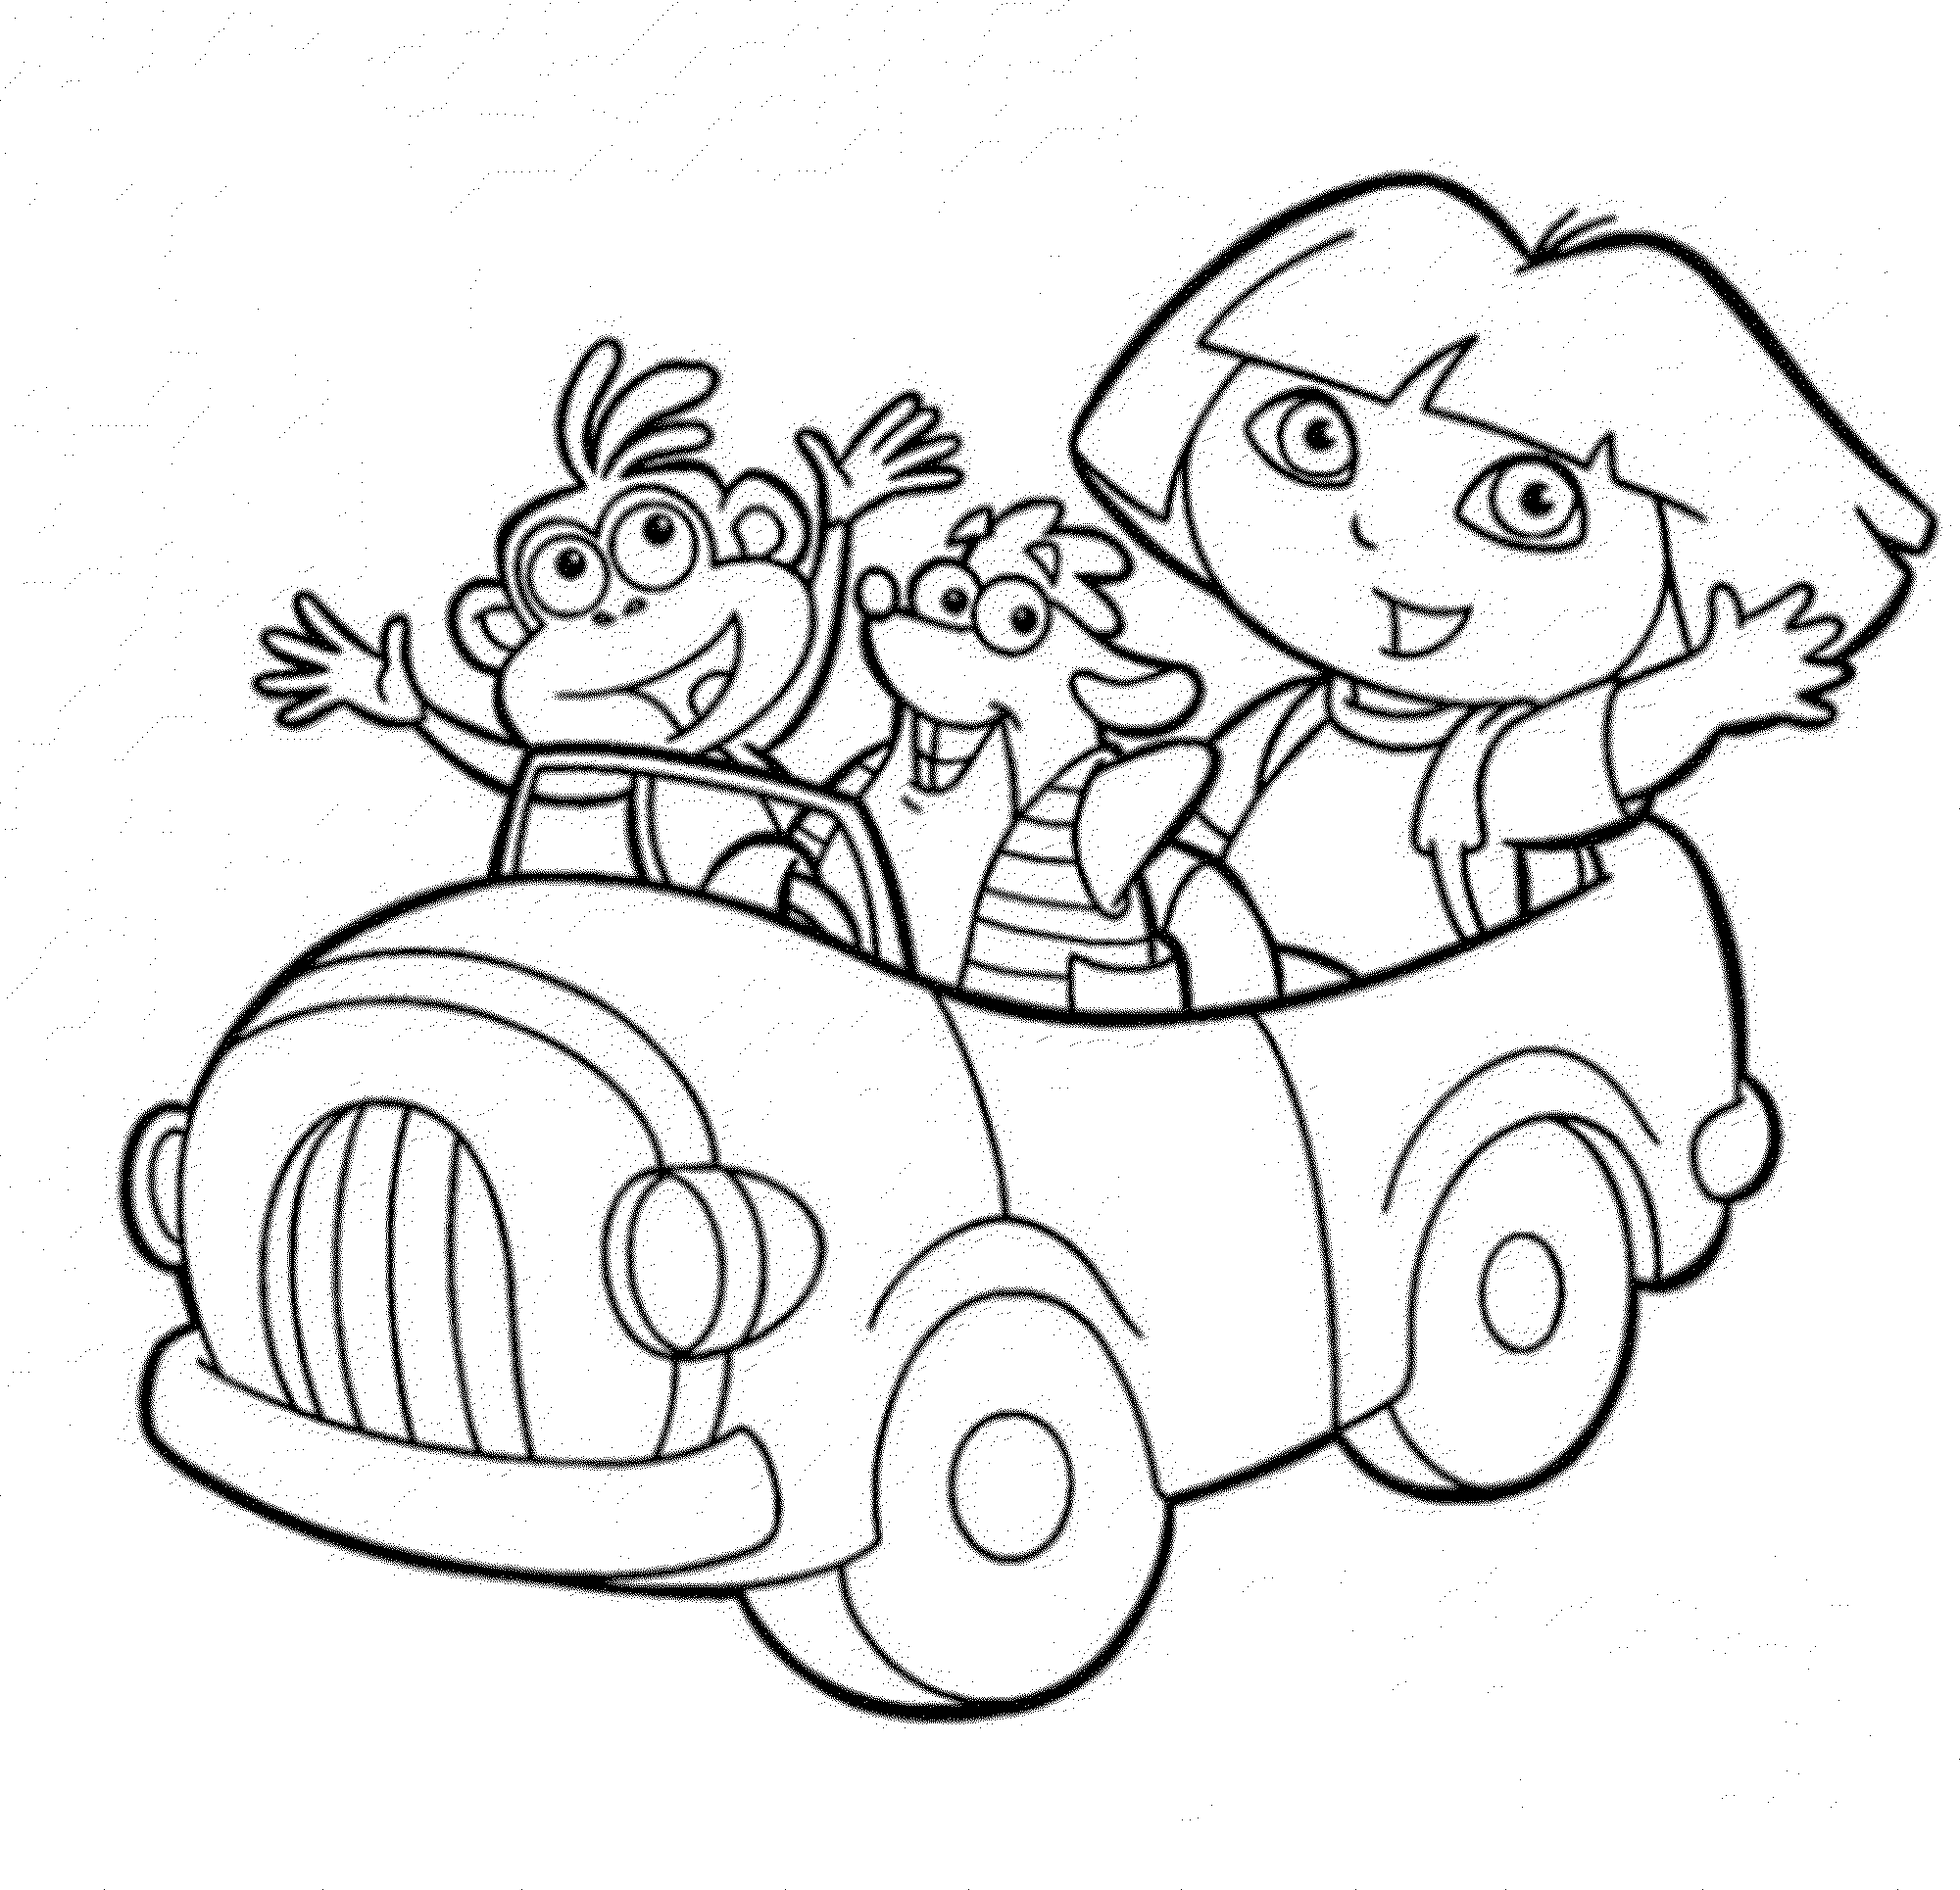 print dora coloring pages awesome dora coloring pages diego coloring pages dora coloring print dora pages